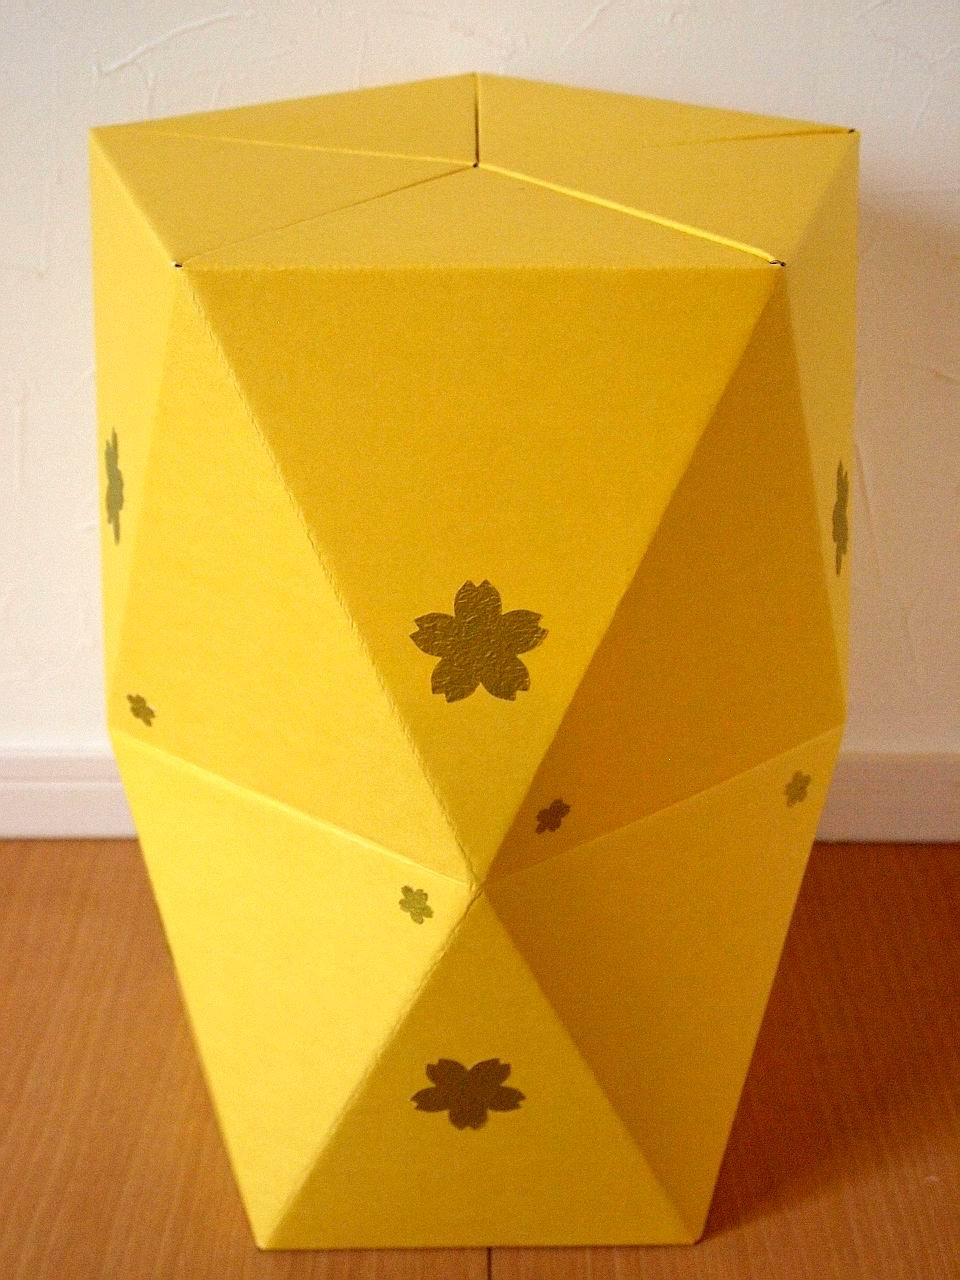 CARBOARD STOOL ~This is made with your hand.~ (Yellow)